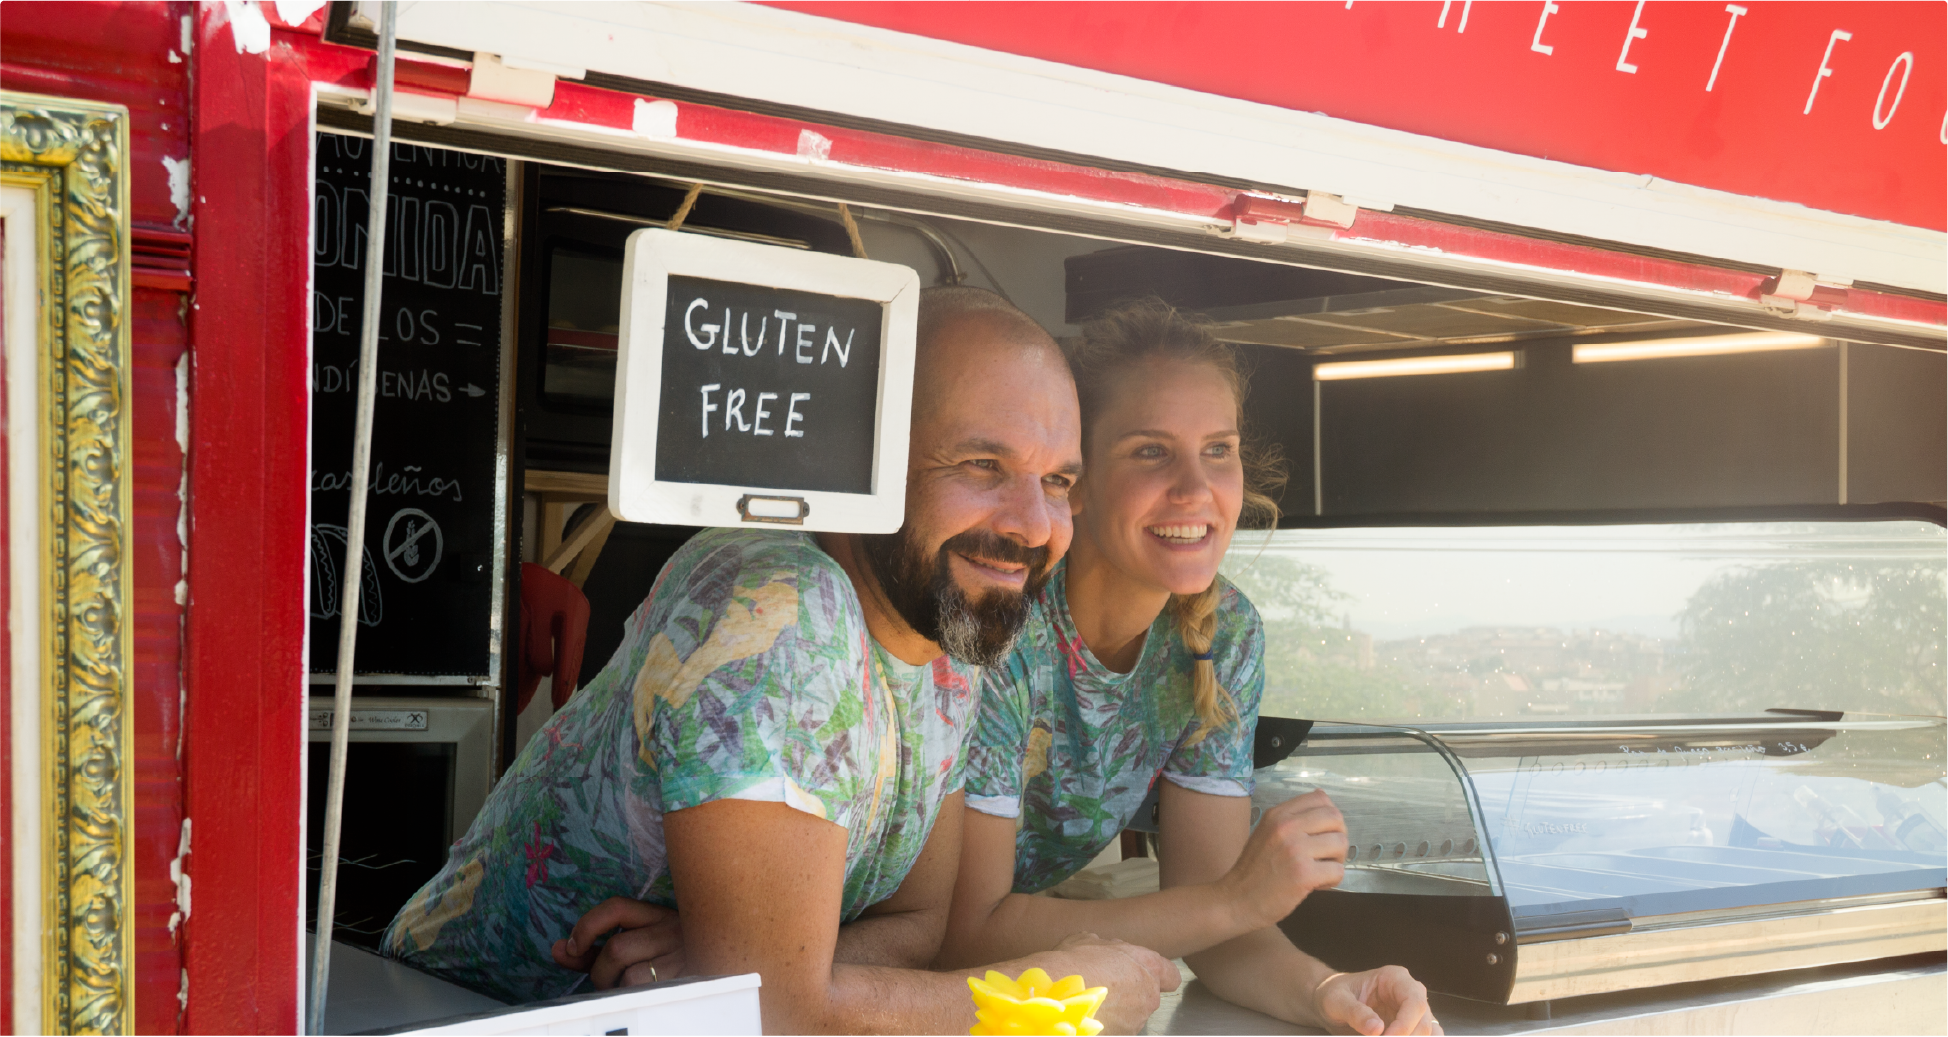 Male and female smiling inside the windows of a food truck.